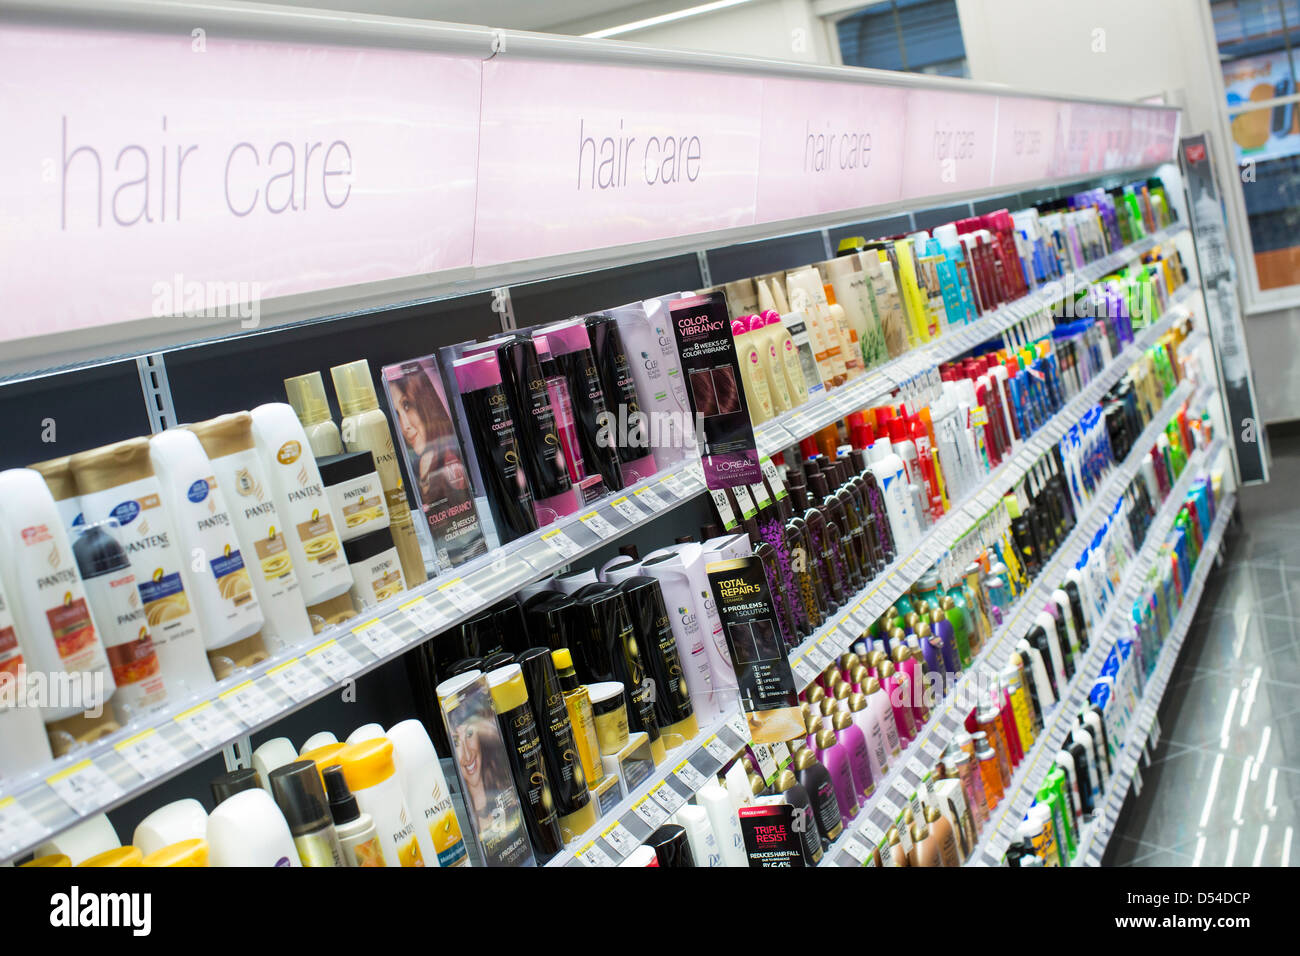 Hair care products on display at a Walgreens Flagship store in downtown Washington, DC. - Stock Image